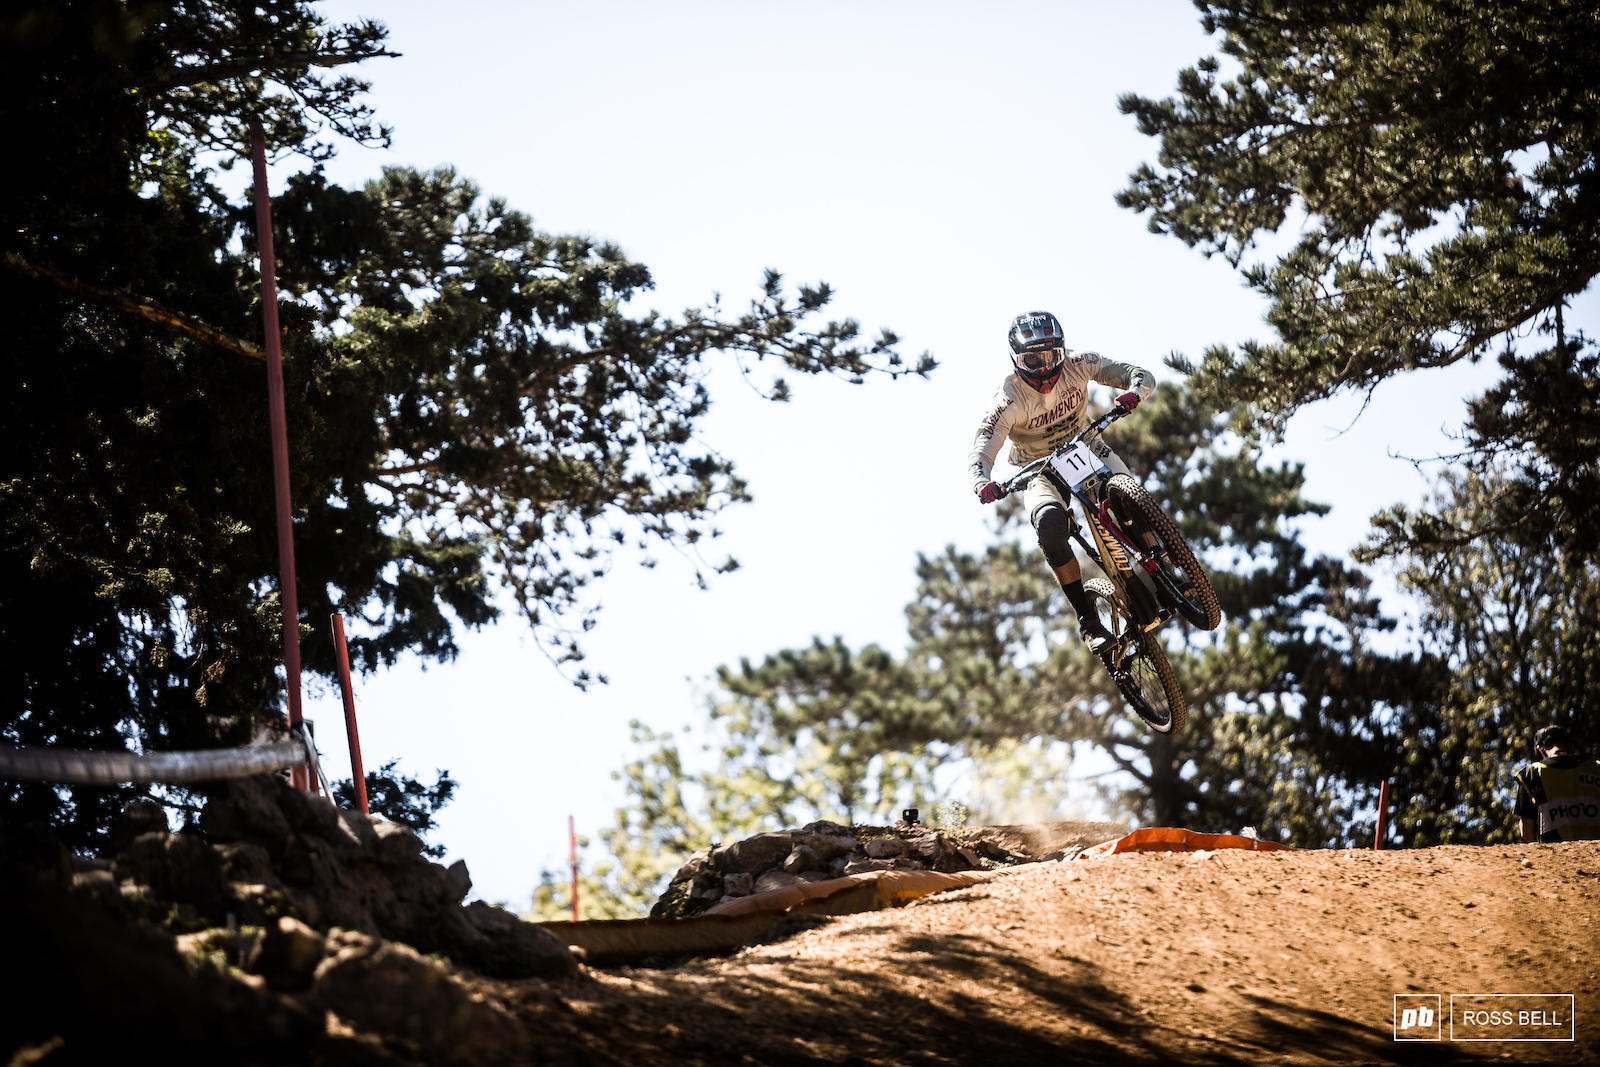 Commencal s new signing Amaury Pierron has been on a tear in the opening few races of 2018 but would be denied the result his pace deserved with a flat not far from home.